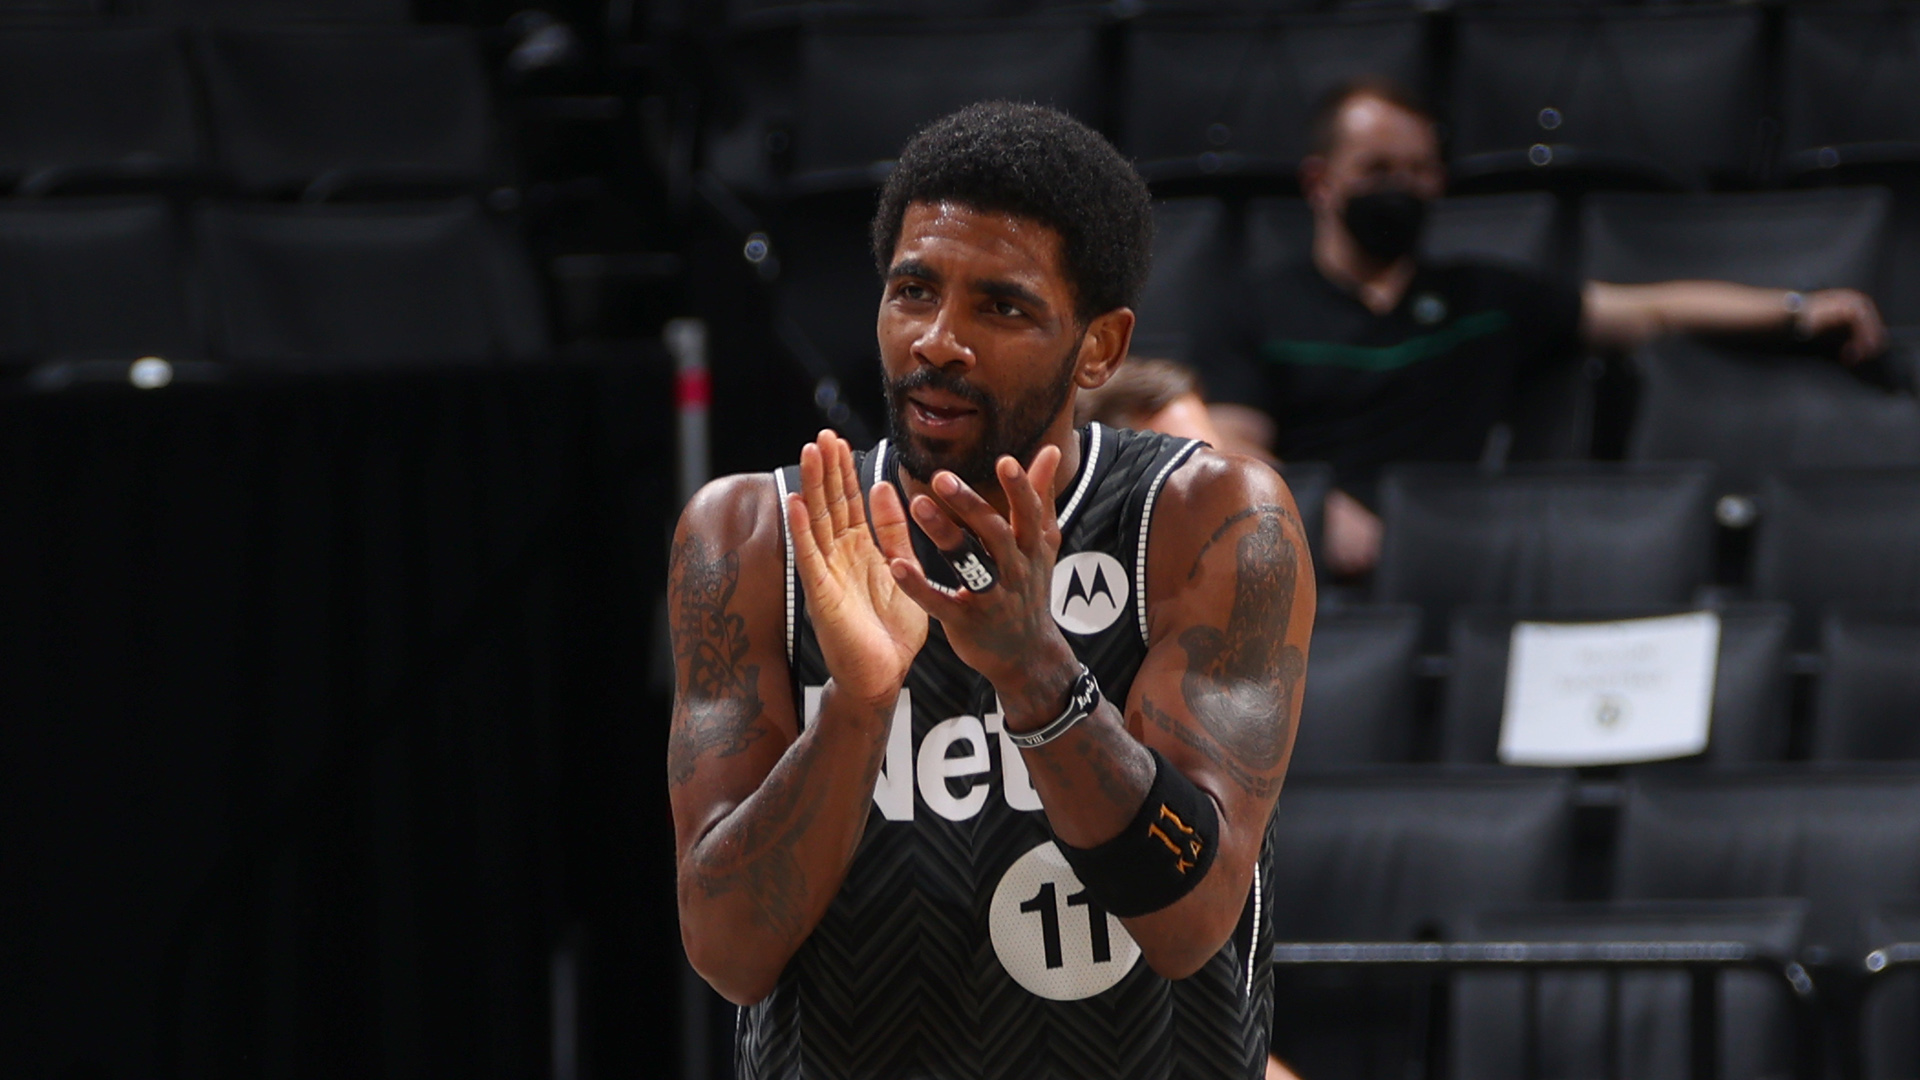 Kyrie Irving out Monday for Nets-Timberwolves for personal reasons